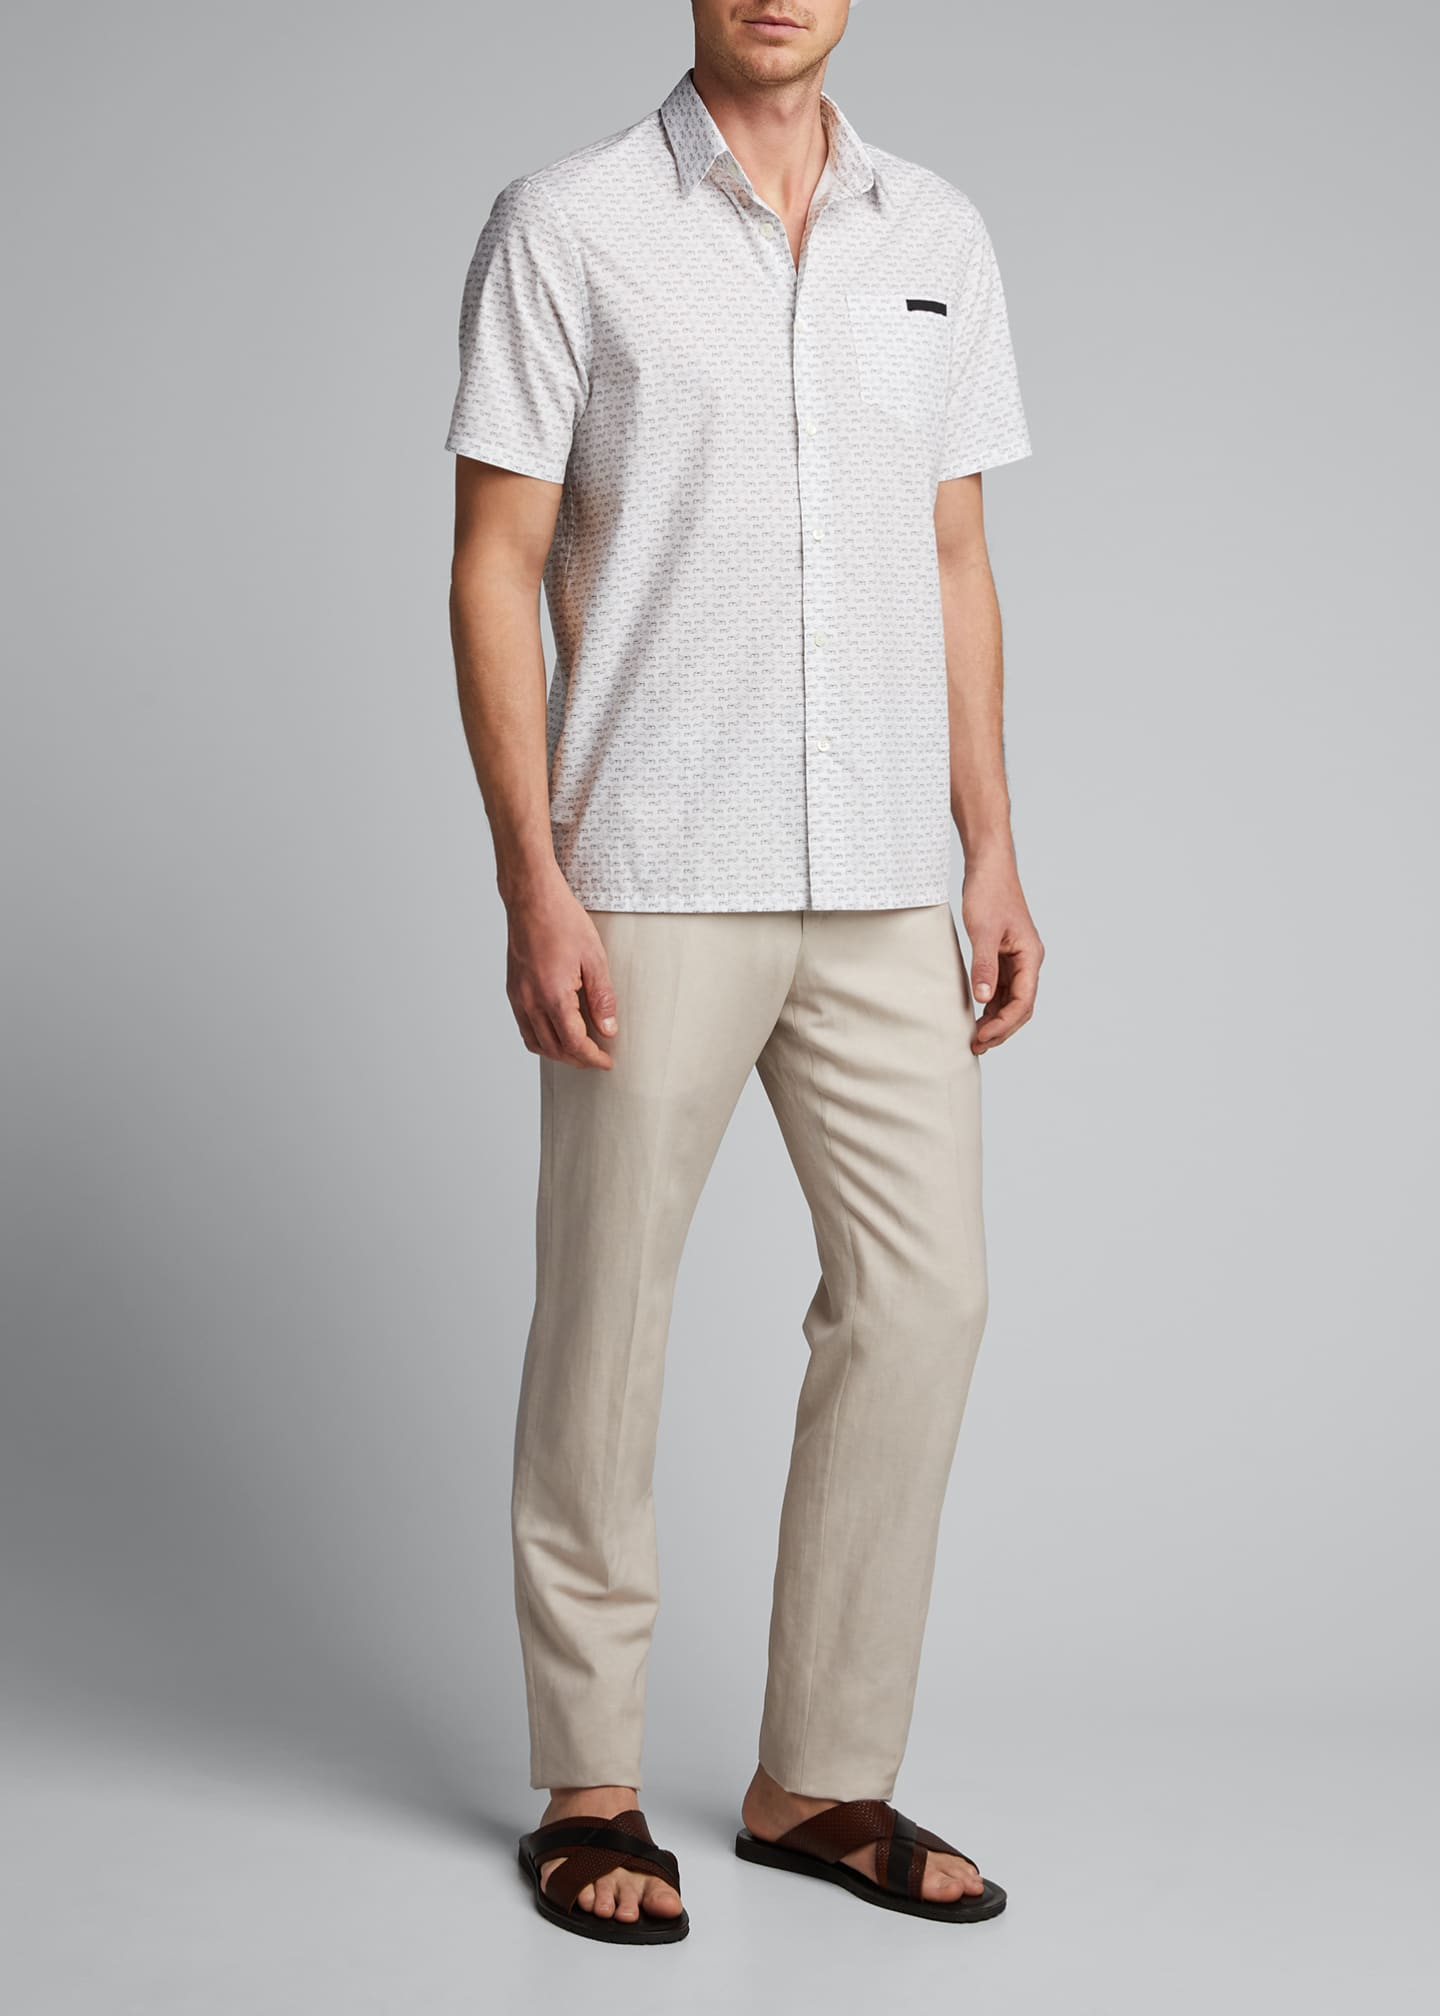 Image 1 of 5: Men's Journey Graphic Poplin Short-Sleeve Shirt